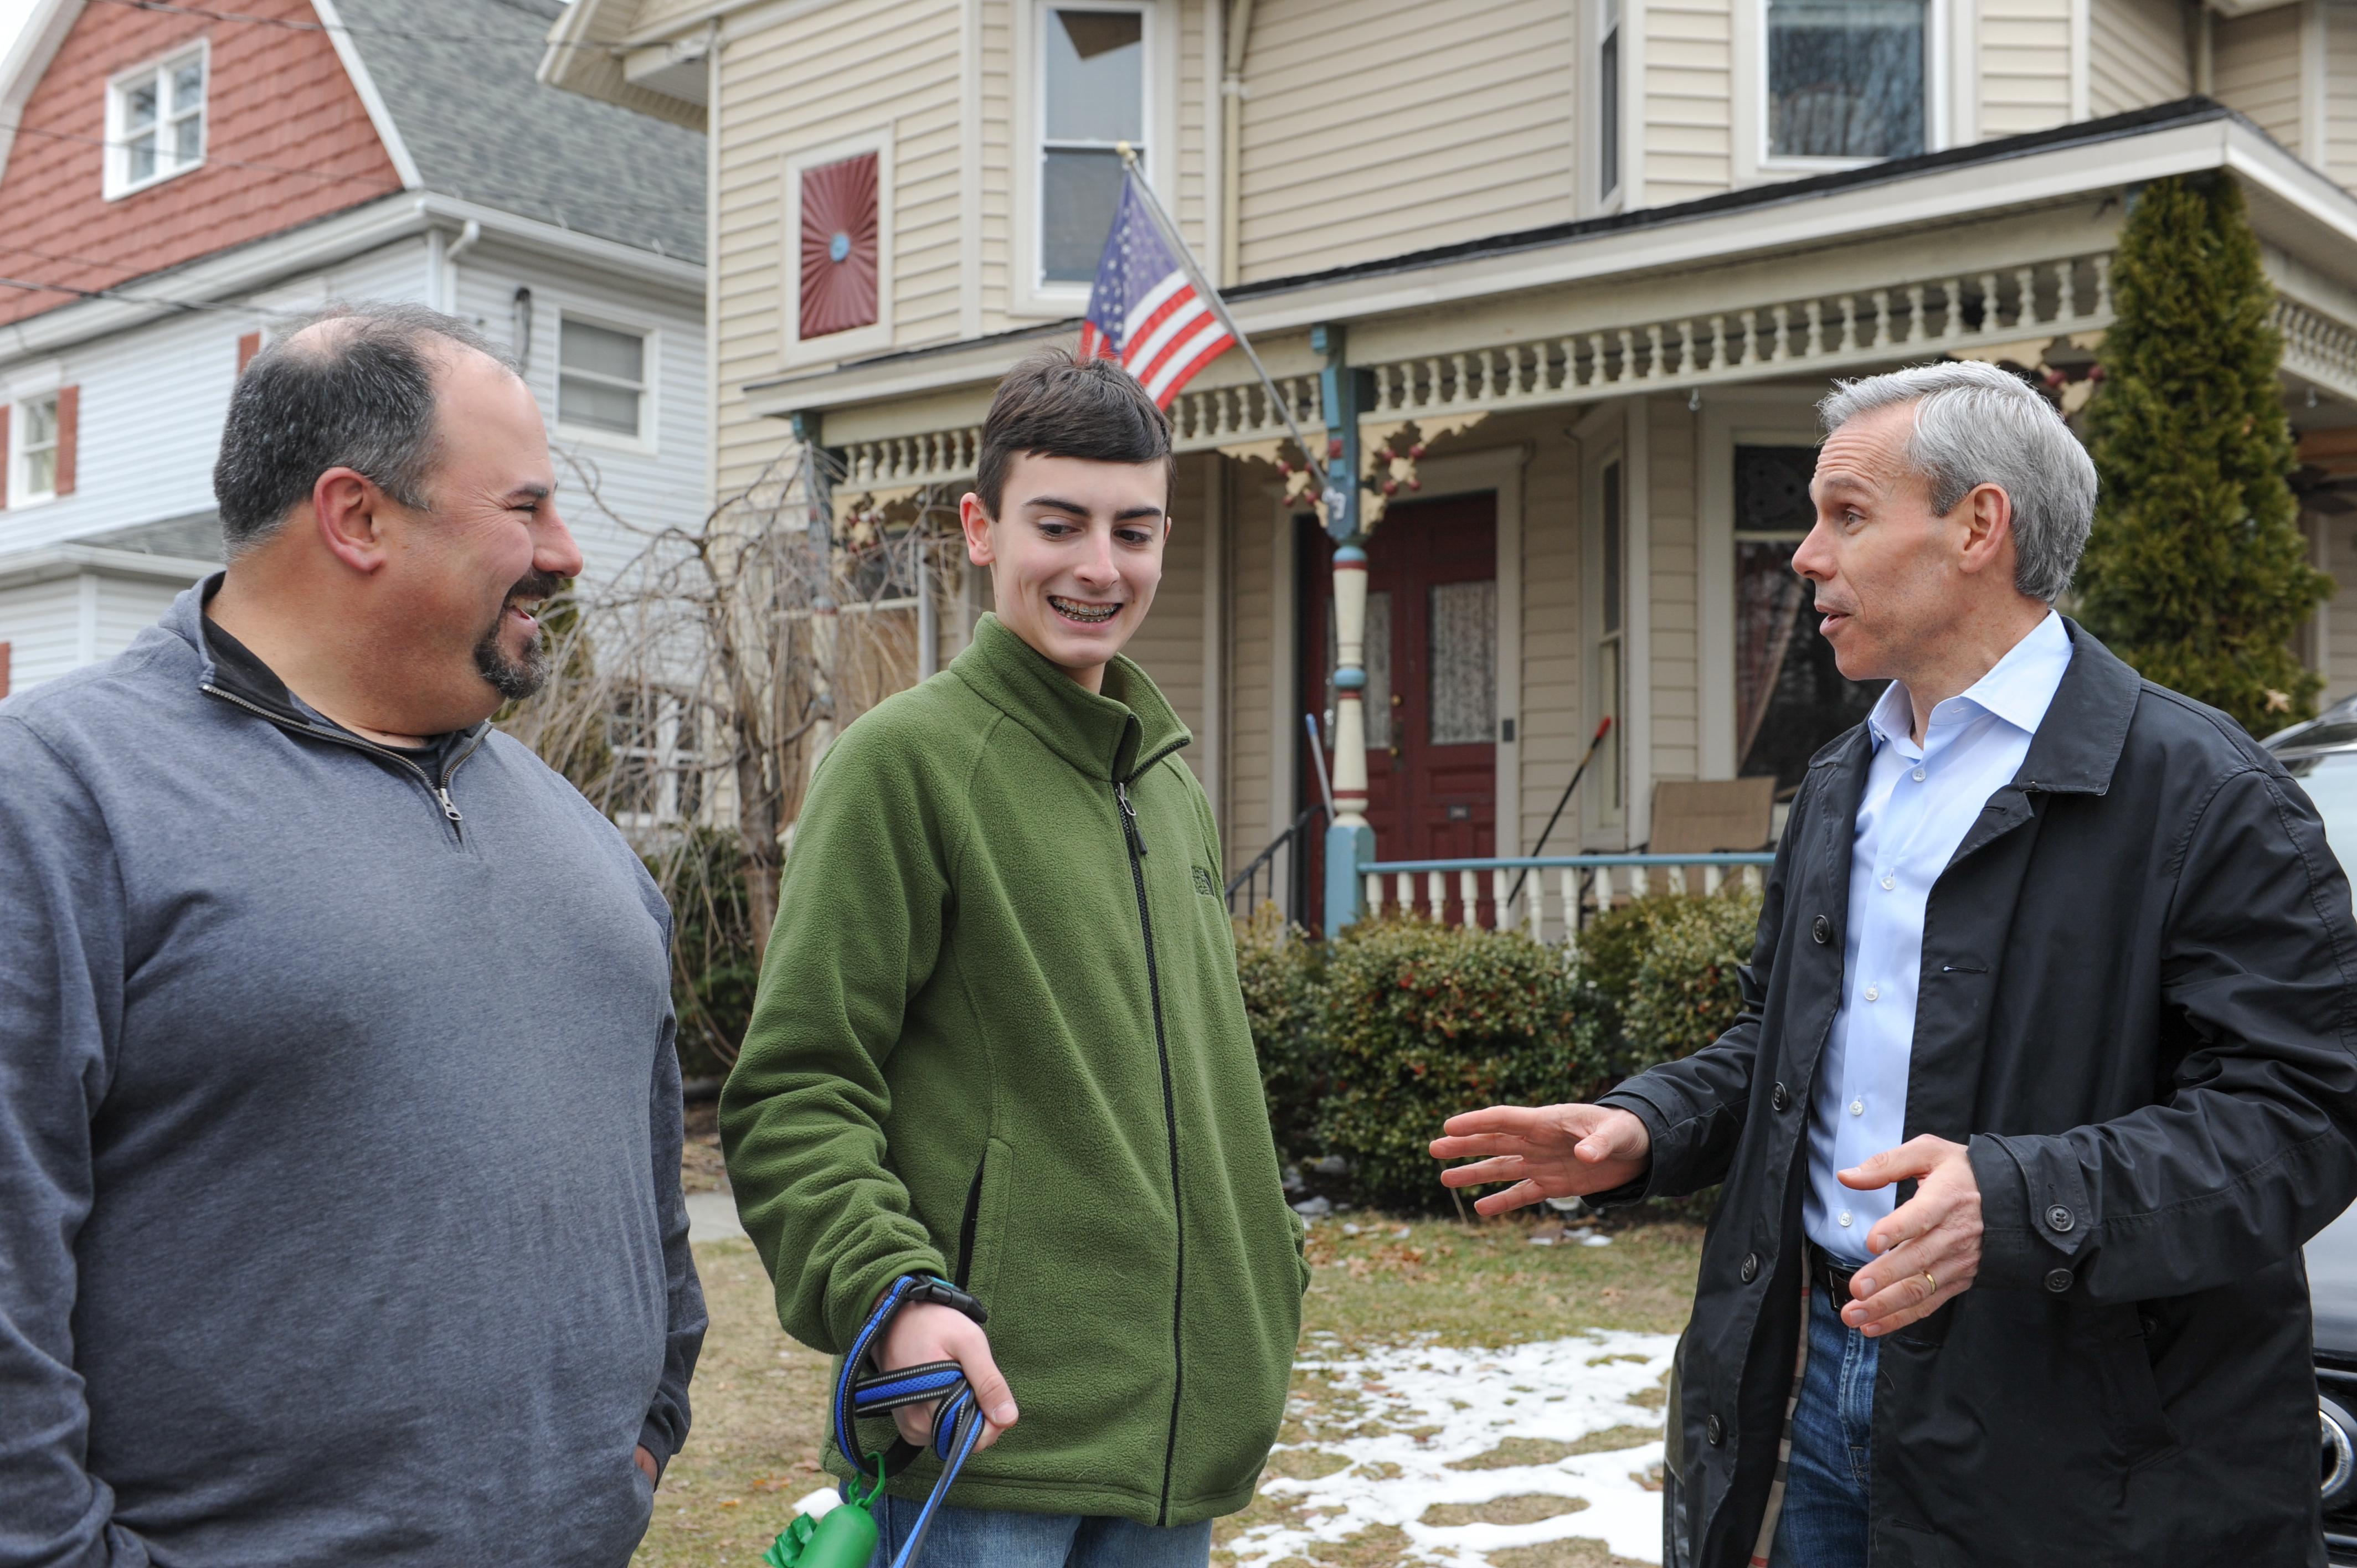 John visits with some voters from the district